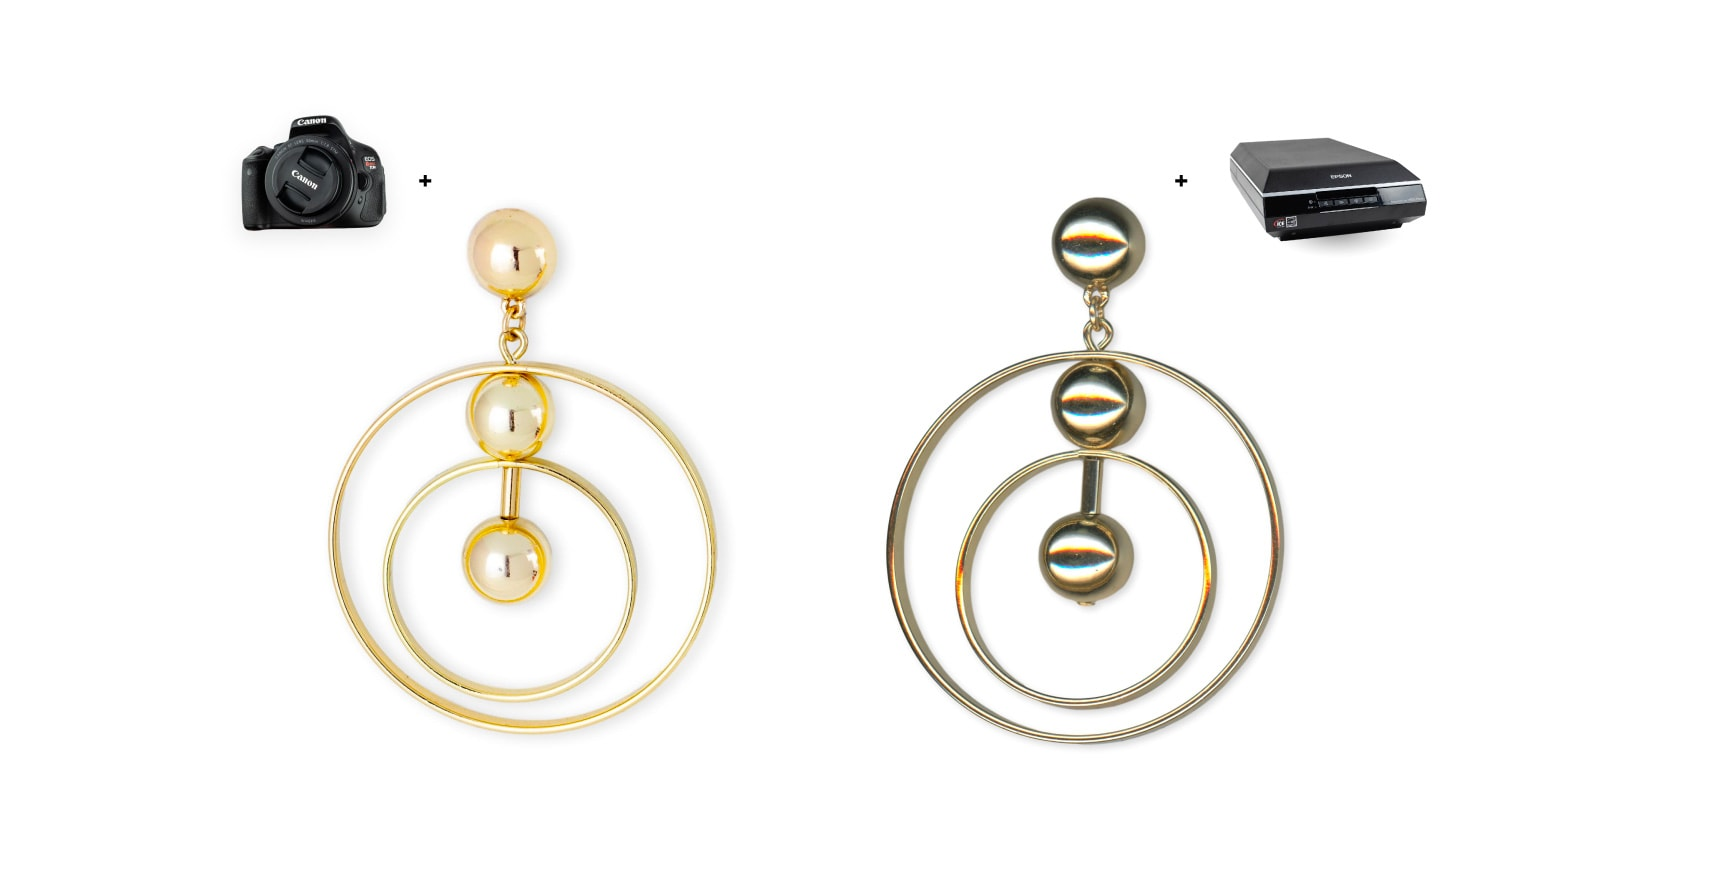 Example of a highly reflective earring that doesn't look good after being scanned, and how it looks taken with a DSLR